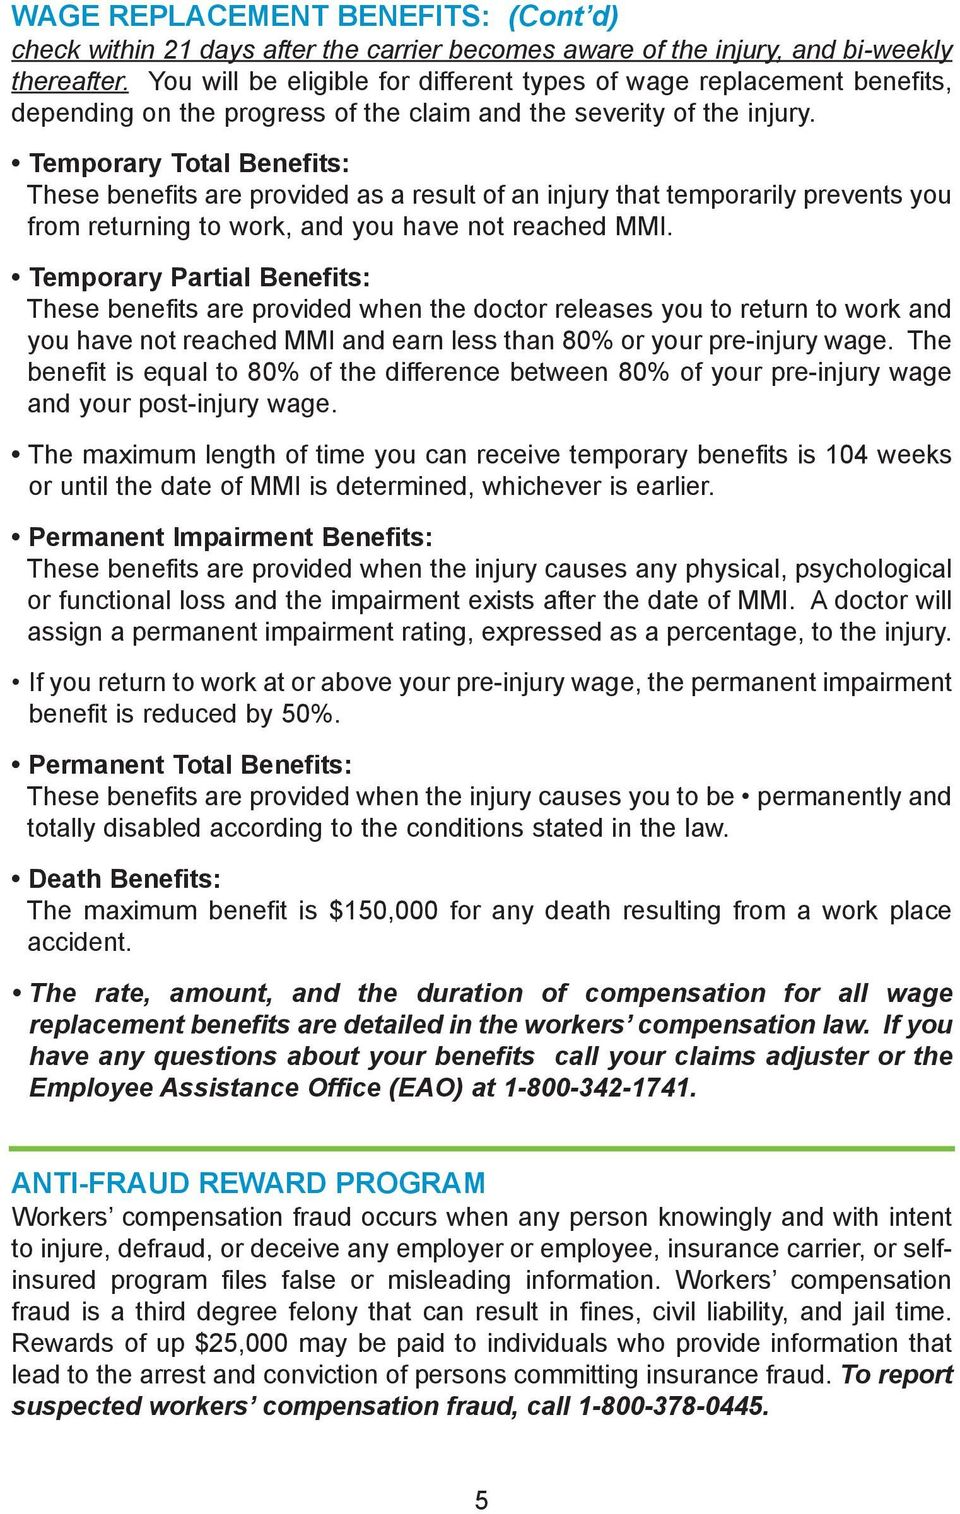 Temporary Total Benefits: These benefits are provided as a result of an injury that temporarily prevents you from returning to work, and you have not reached MMI.